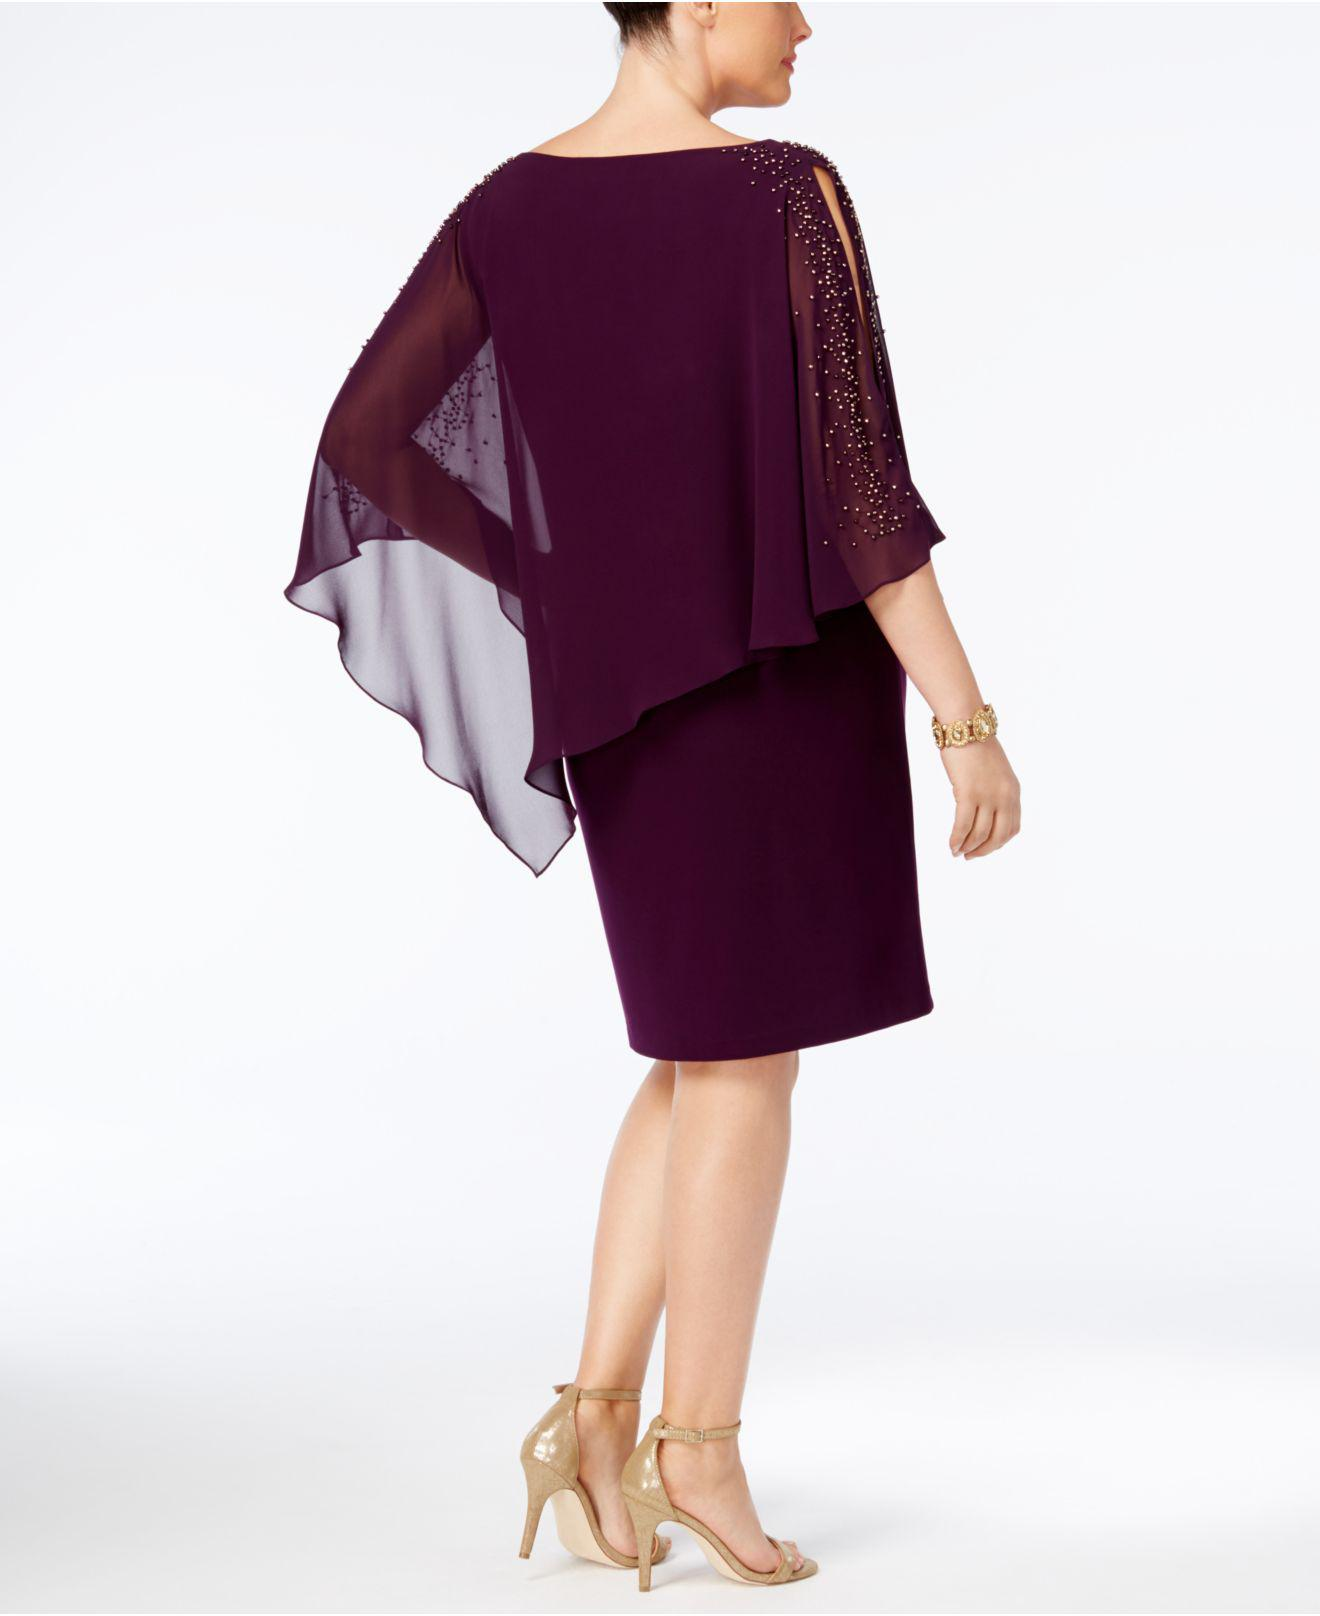 fc2f8efda976 Xscape Plus Size Beaded Chiffon Popover Dress in Purple - Lyst